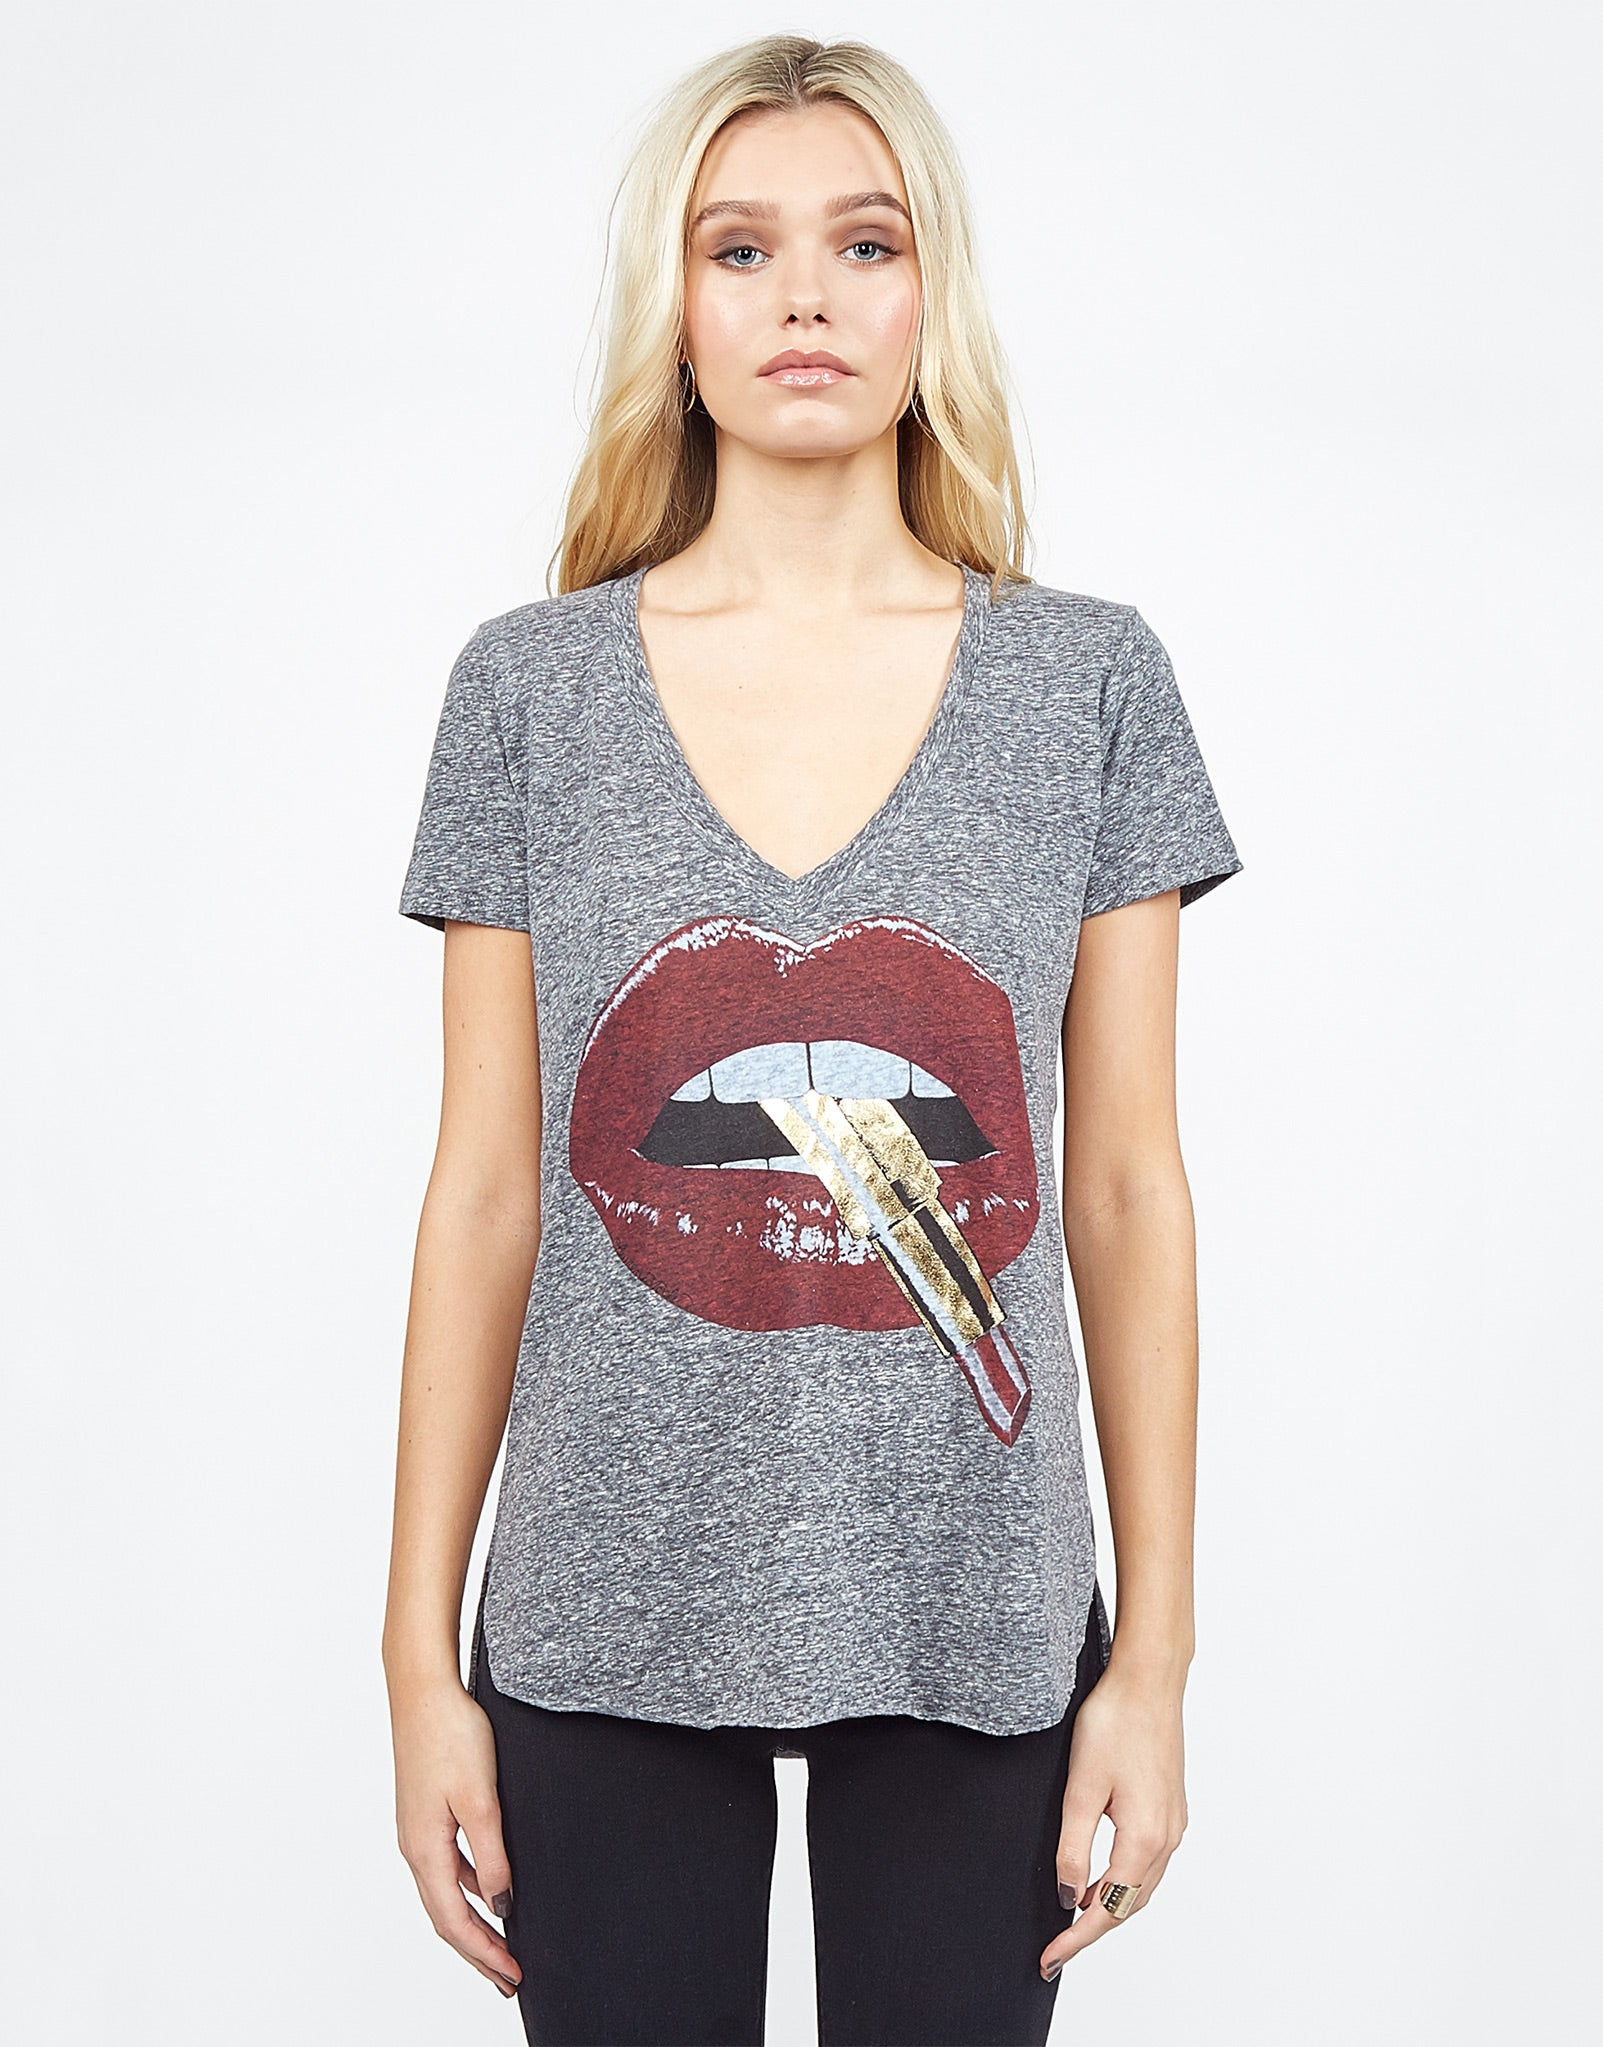 Emmalyn Foil Red Lipstick Mouth S S V-Neck Scoop Raw Hem Tee 95366a8705b2a